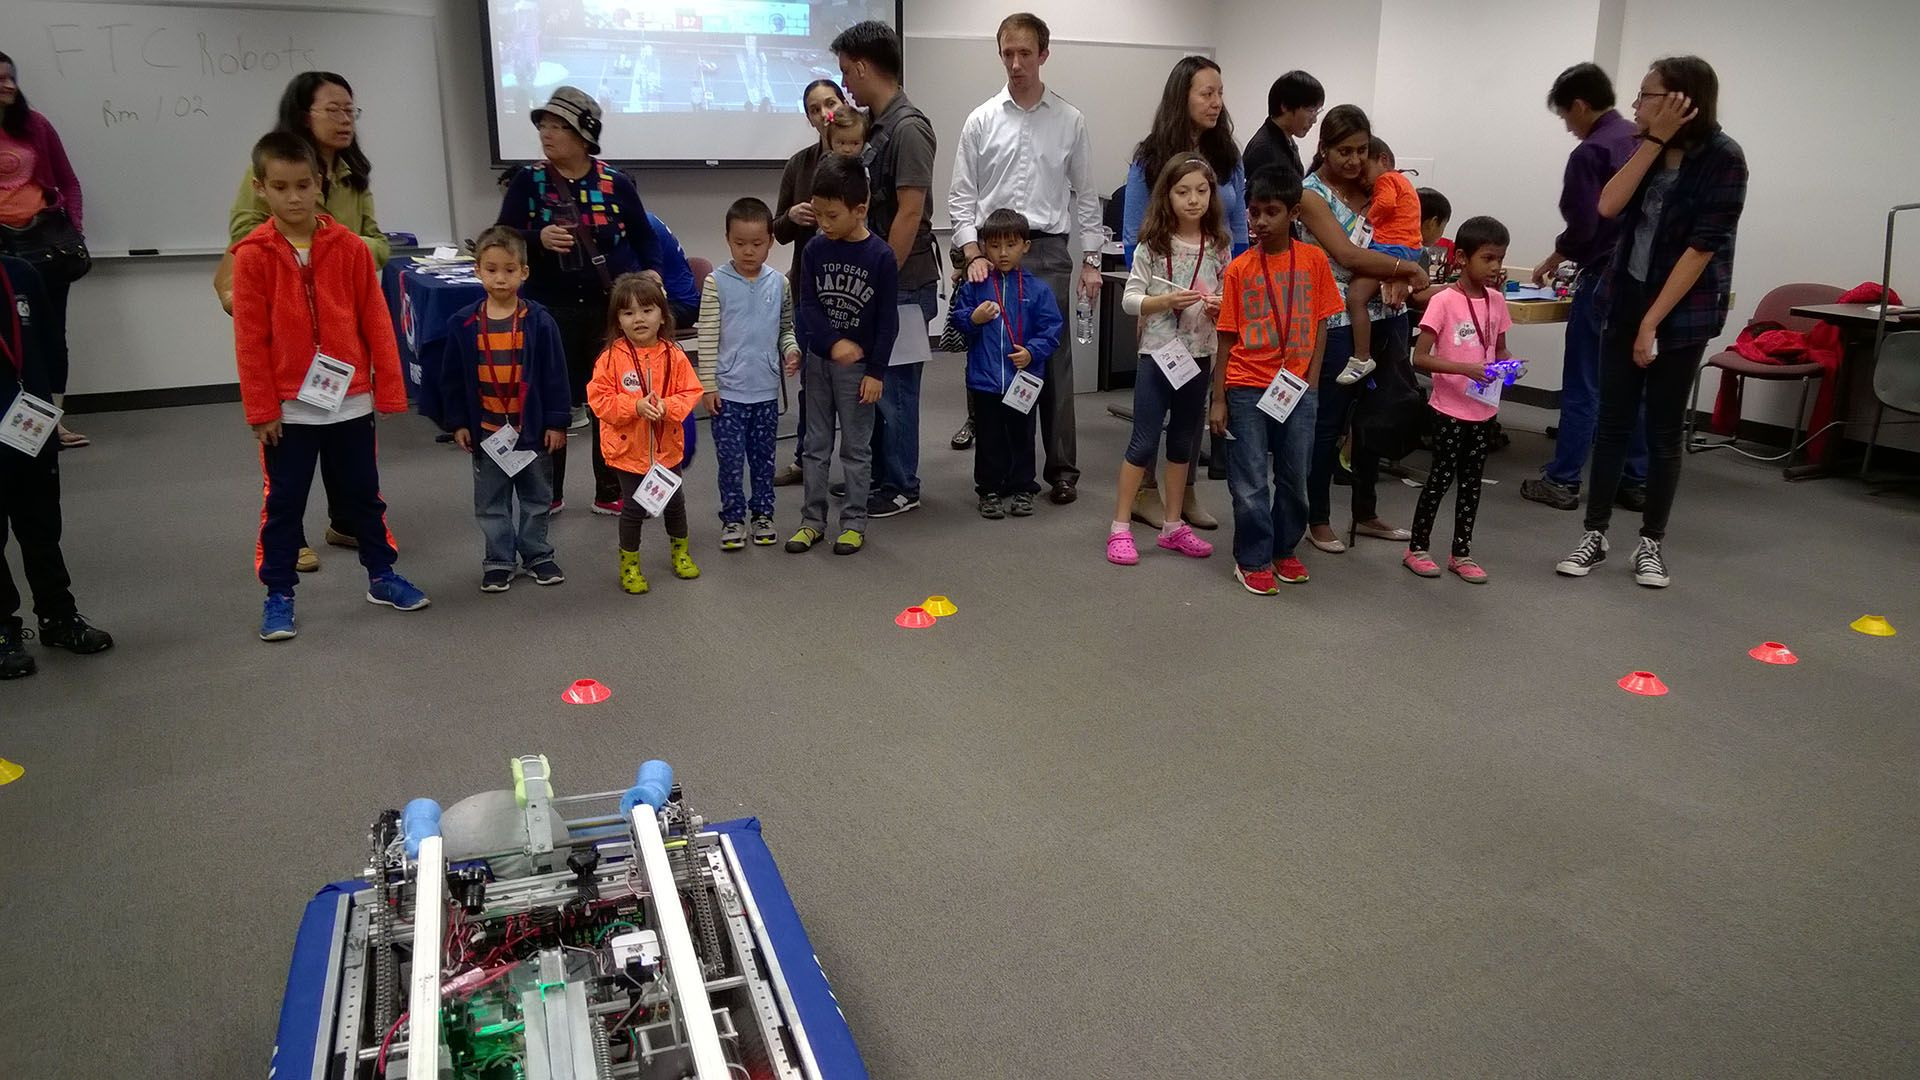 Children and parents watching the robot.